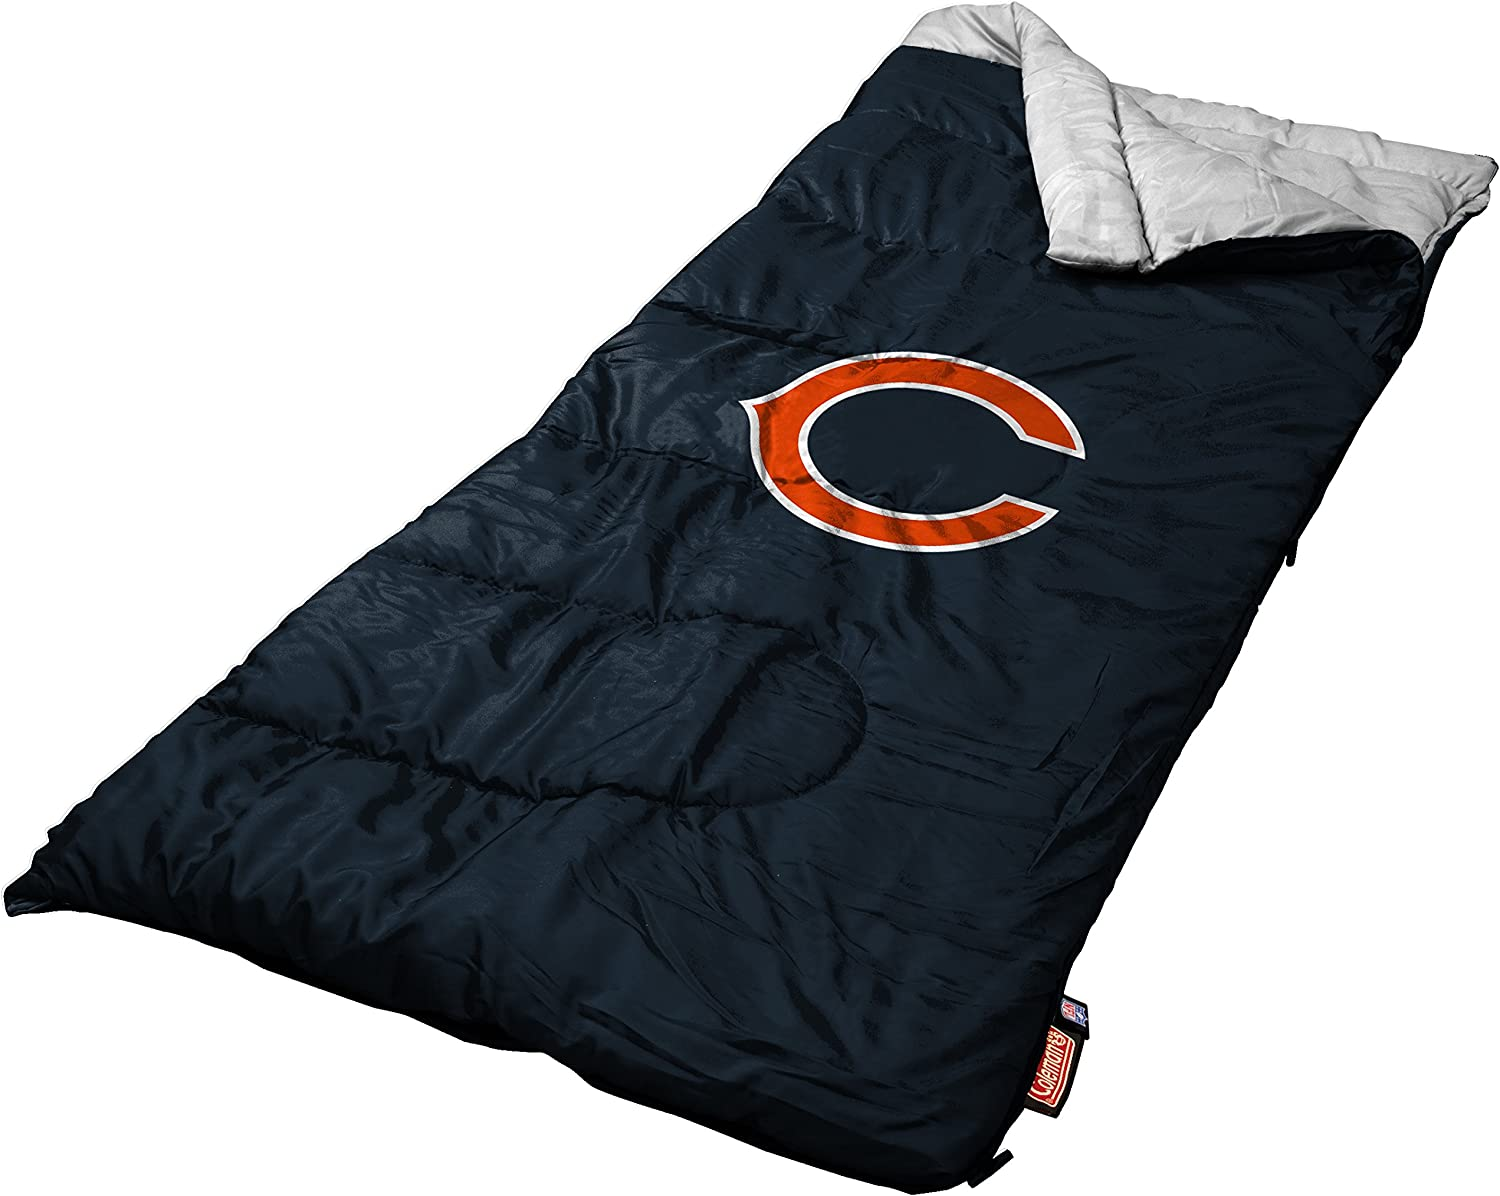 Coleman NFL Youth Sleeping Bag